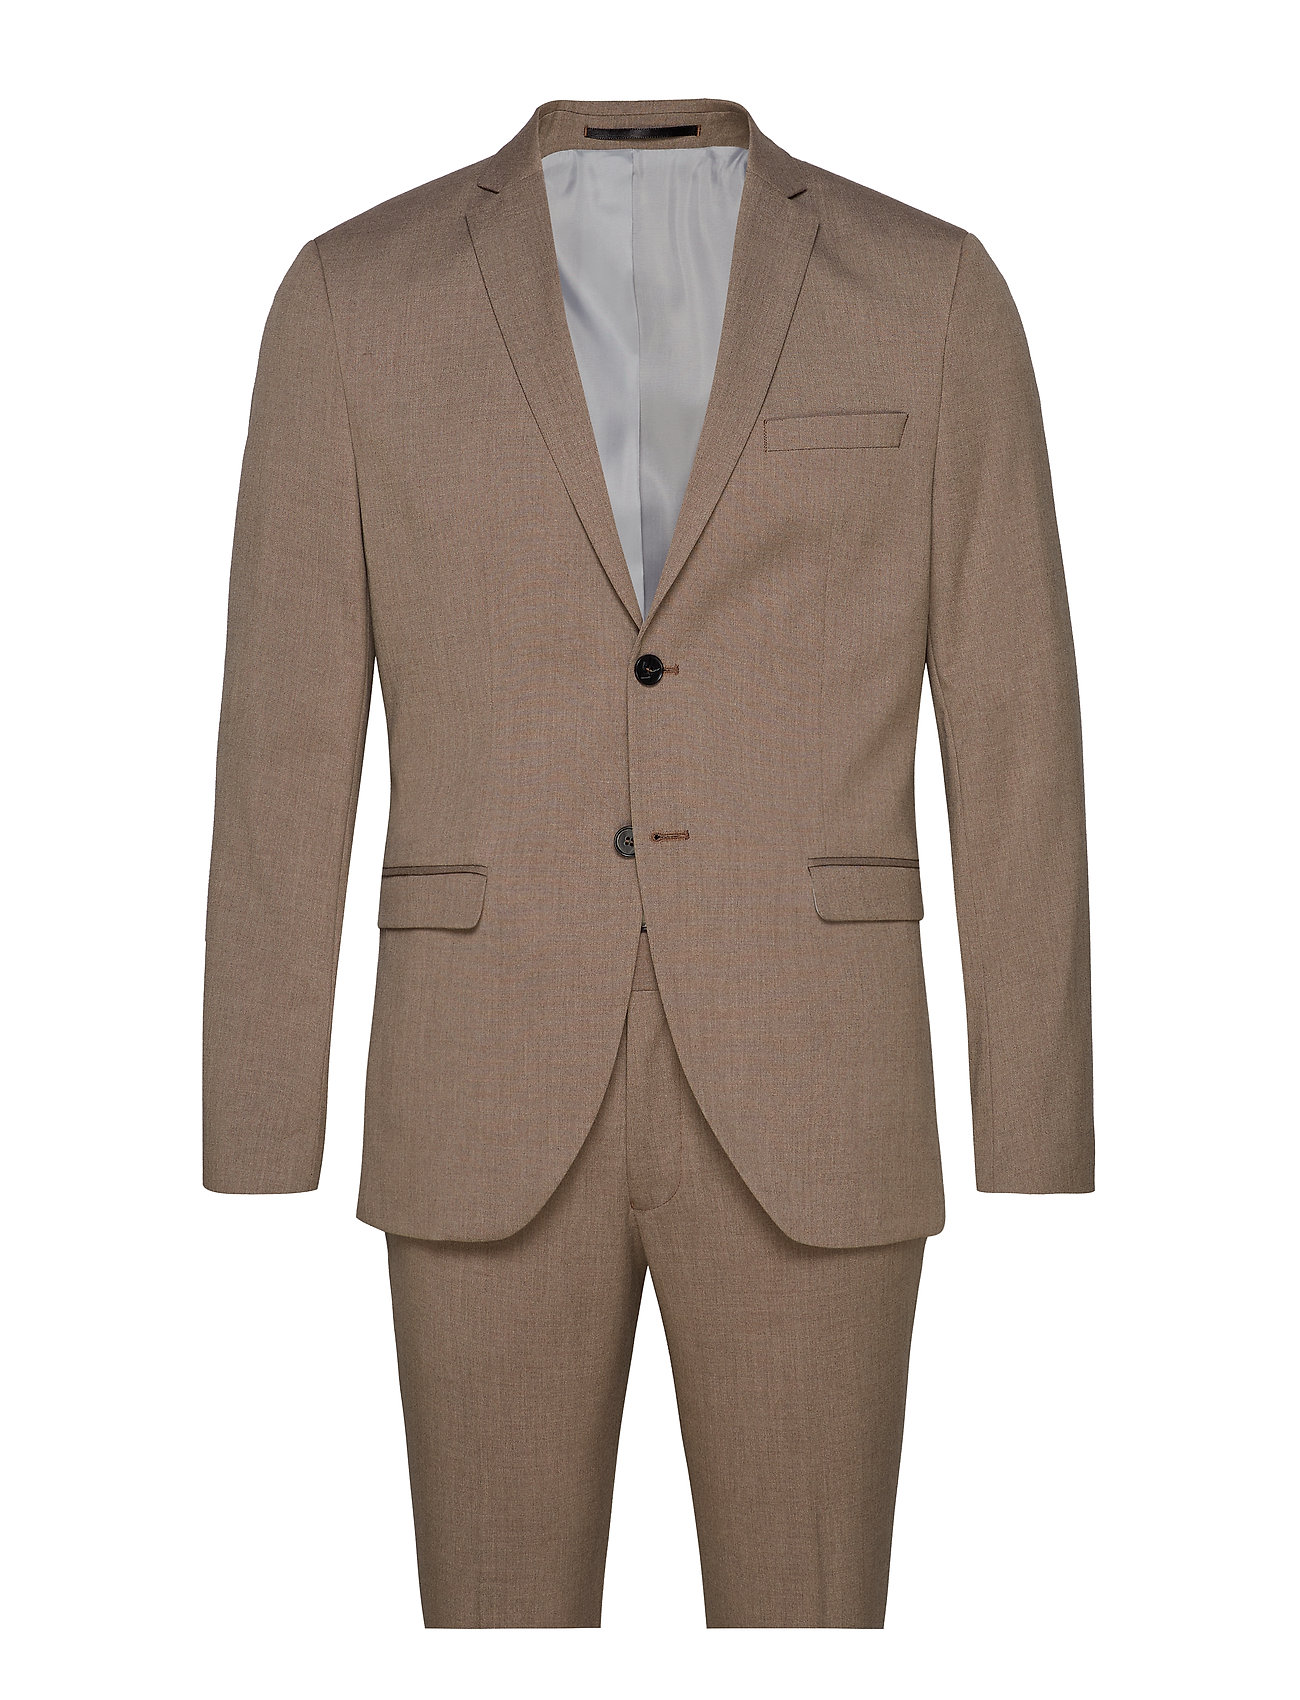 Selected Homme SLHSLIM-MYLOLOGAN LT. SAND SUIT B EX - SAND